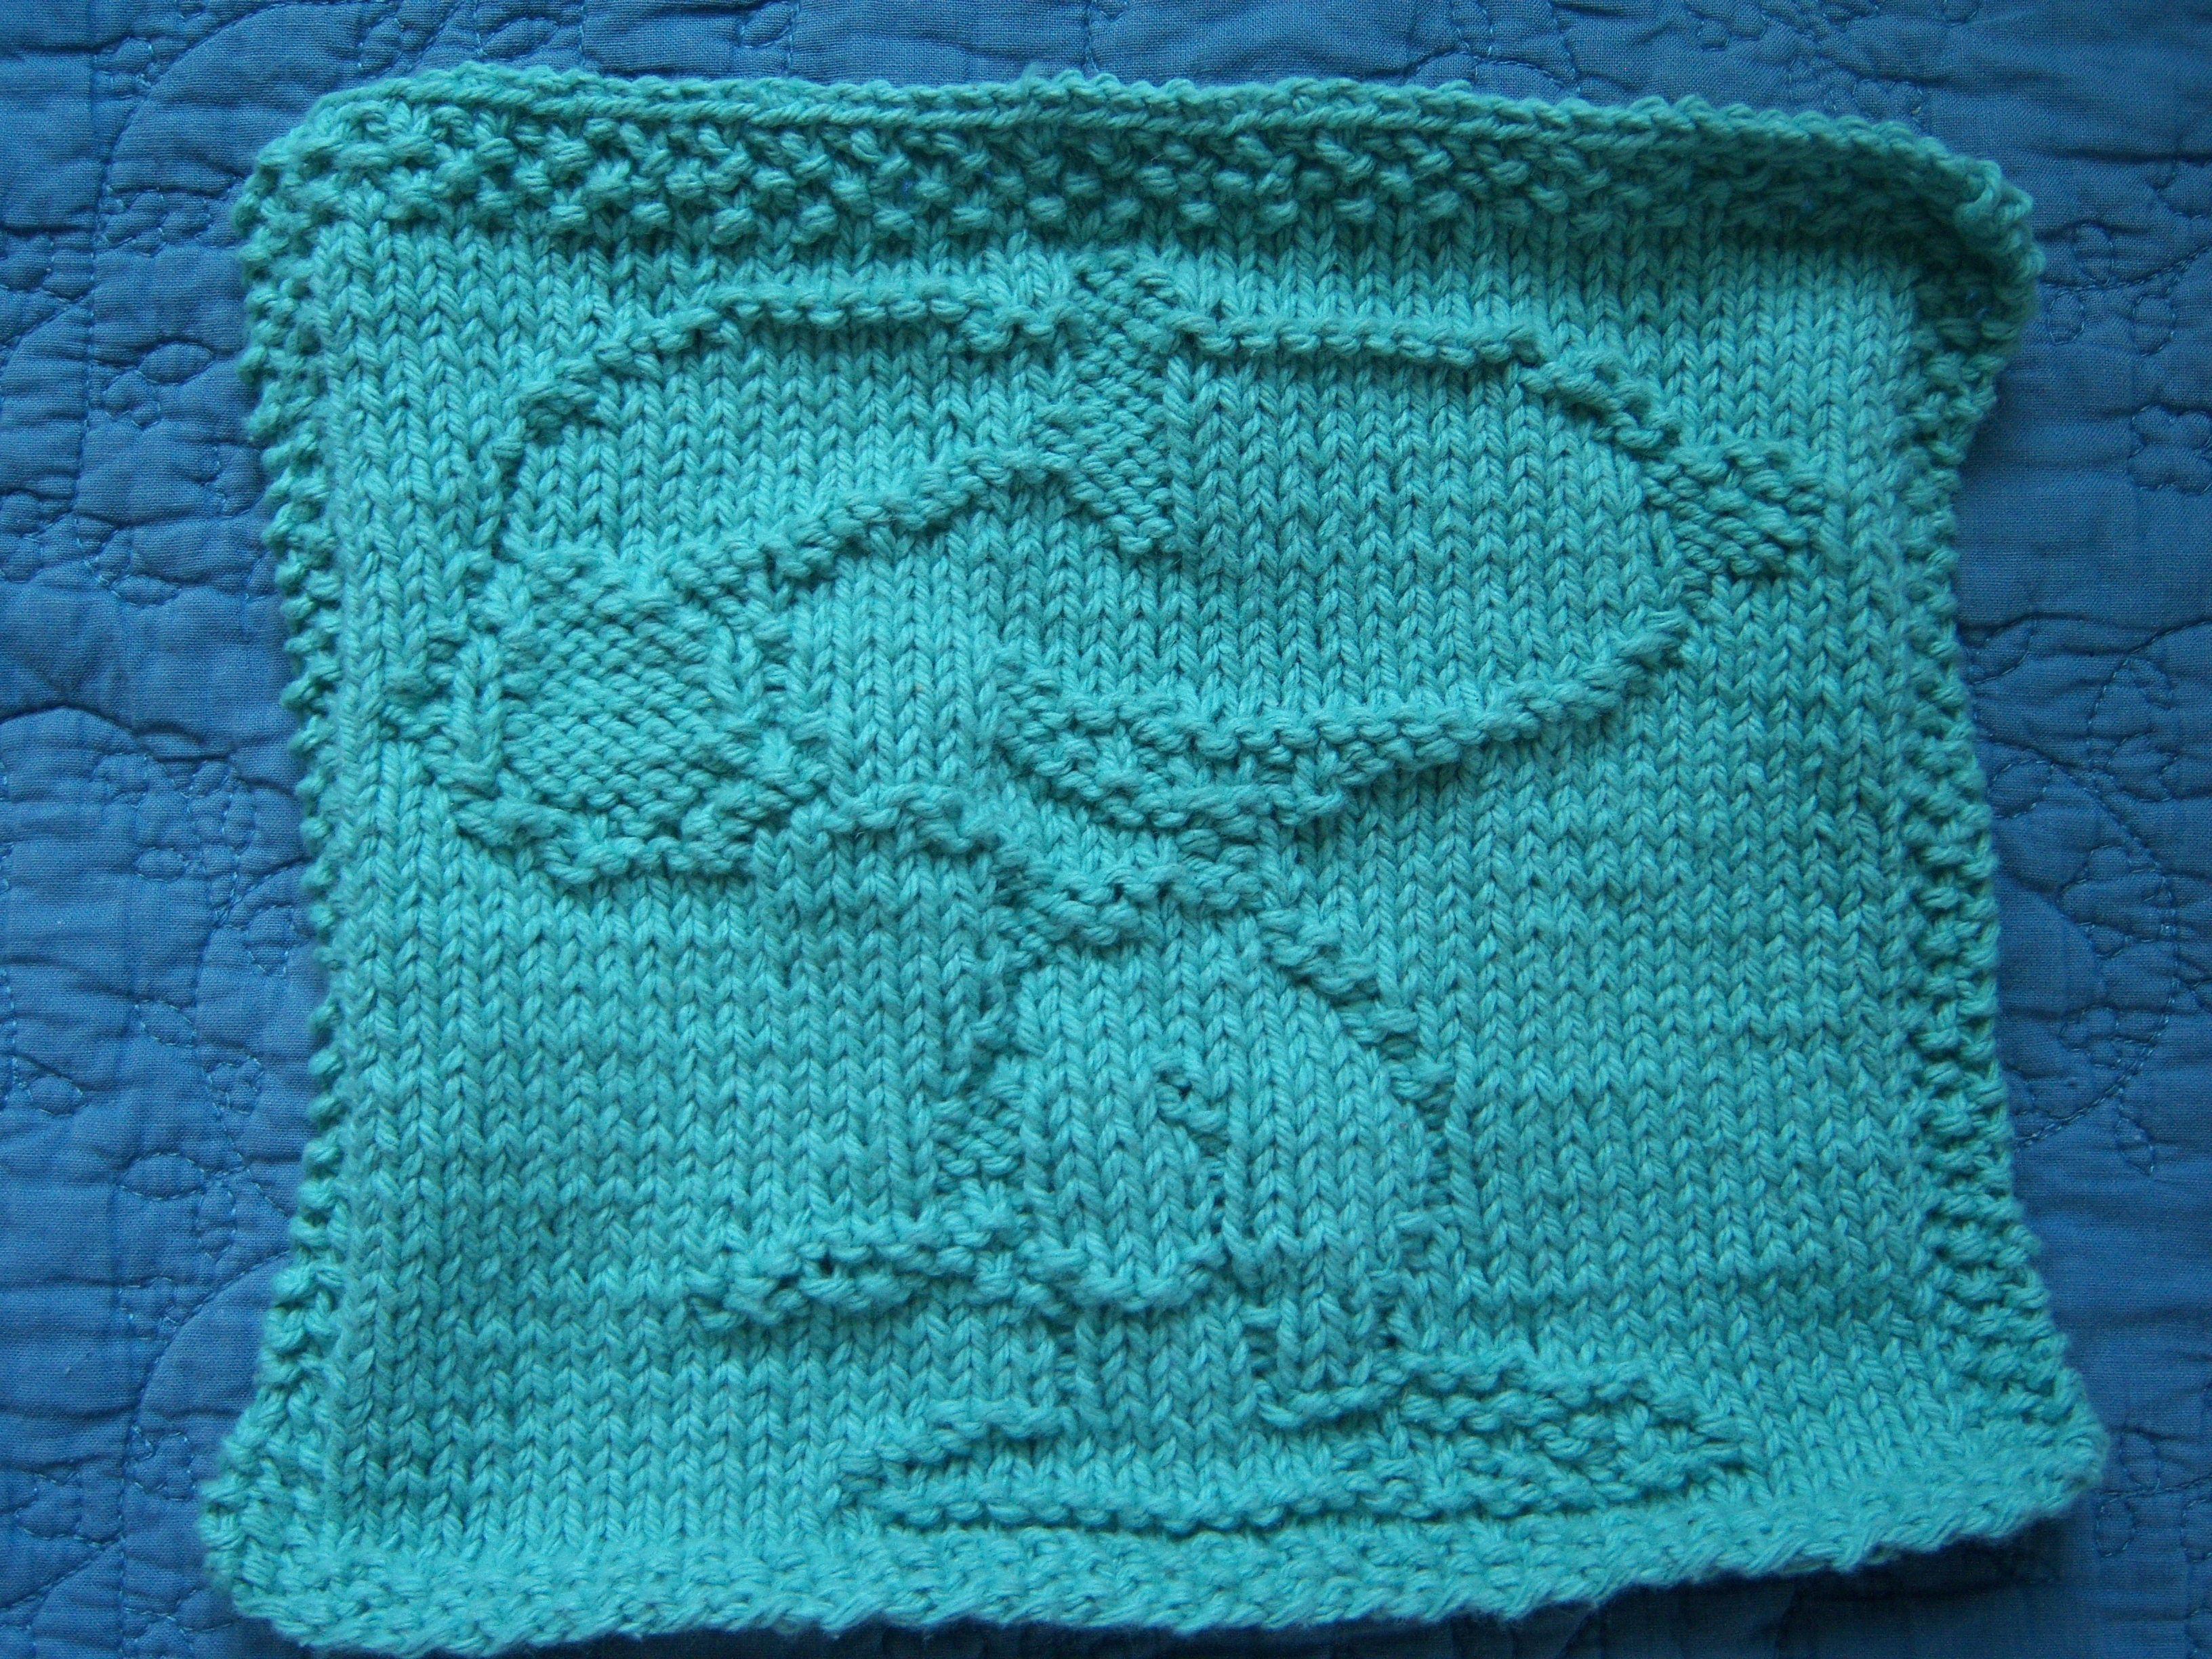 Knit Washcloth Pattern : Knitted Snoopy Washcloth Knitted and crochet patterns Pinterest